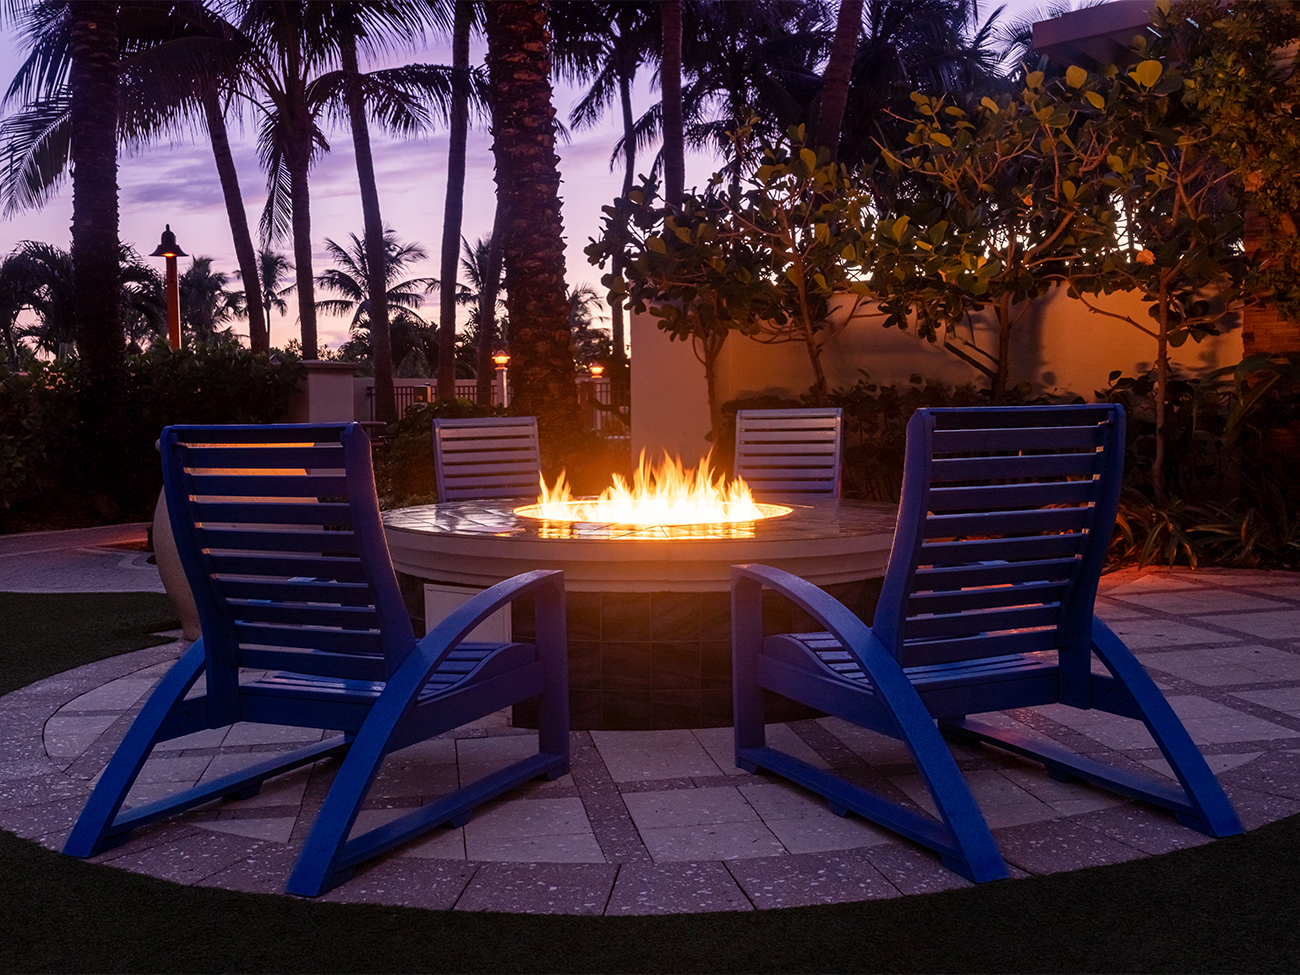 Marriott's Oceana Palms Fire pit. Marriott's Oceana Palms is located in Riviera Beach, Florida United States.